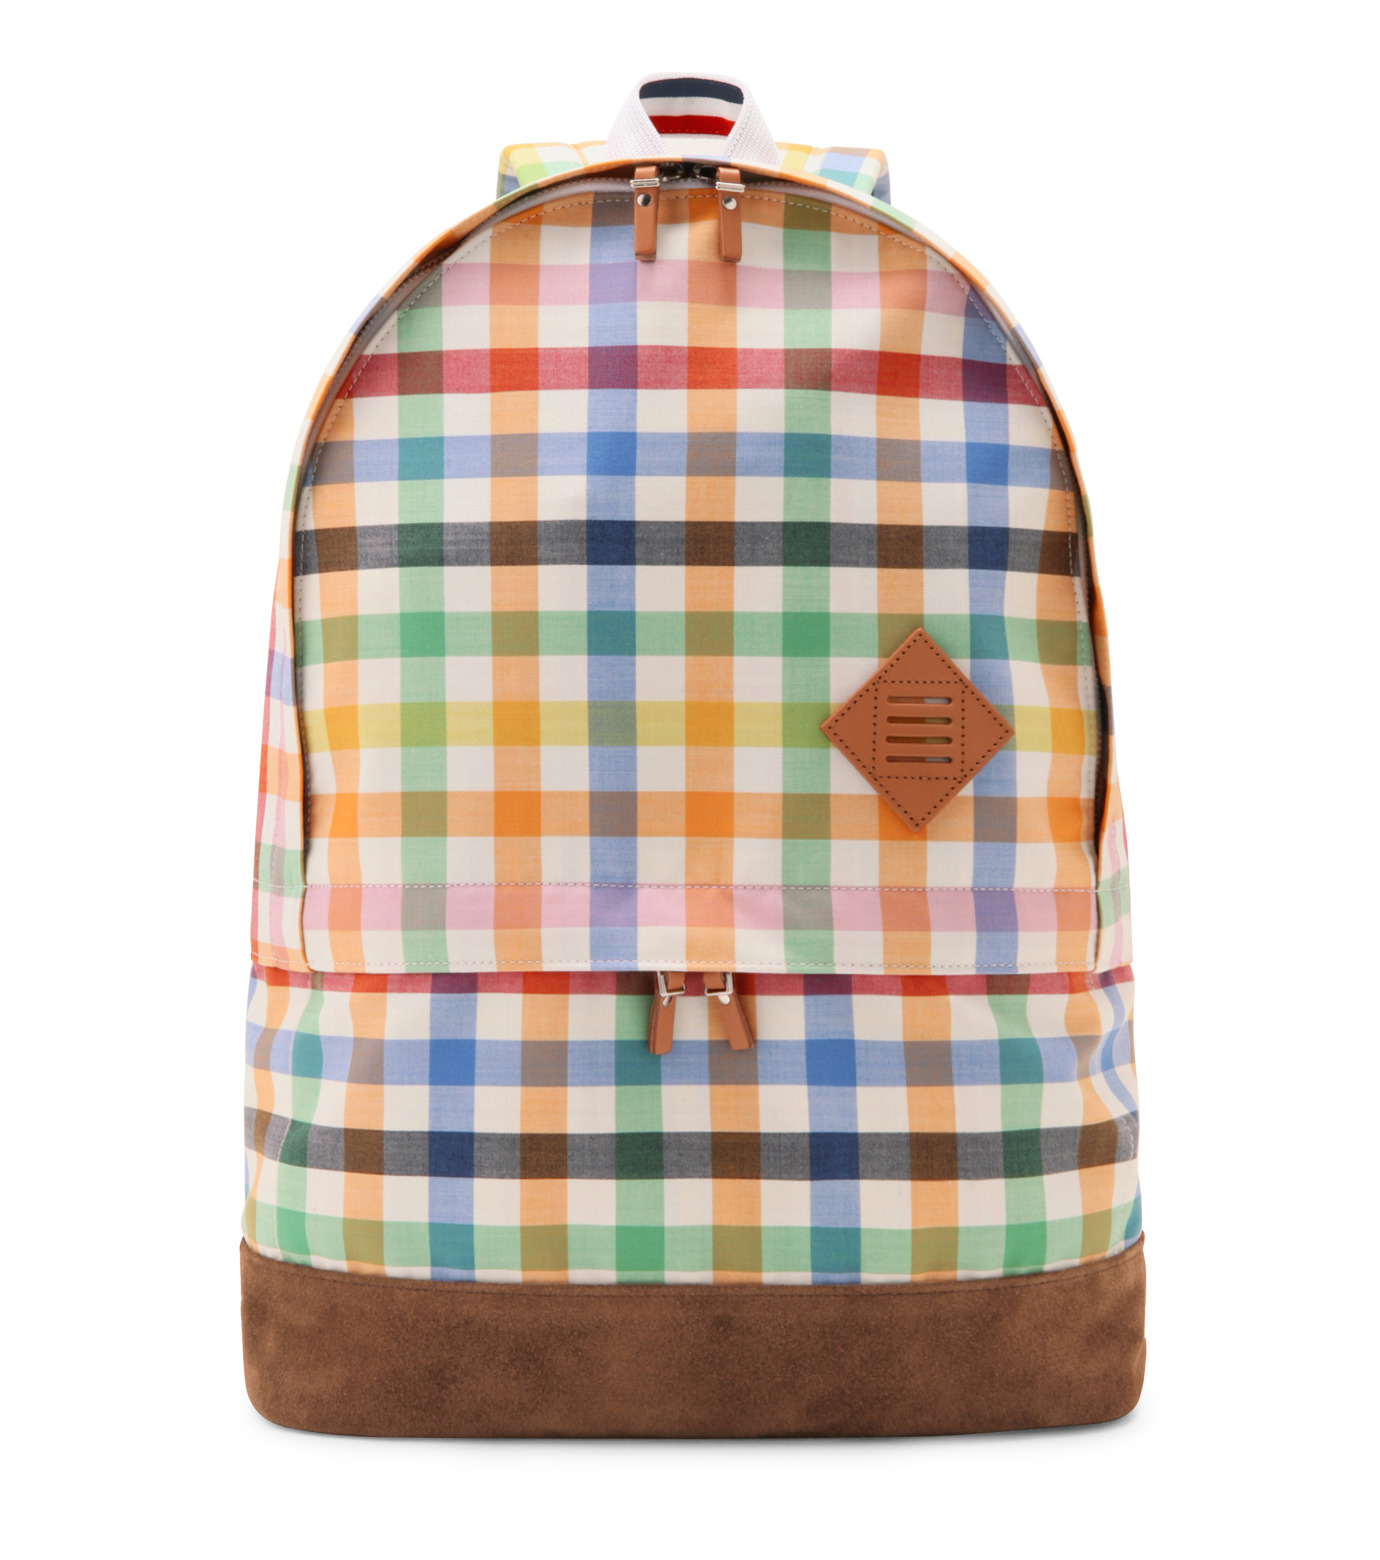 Thom Browne(トムブラウン)のBackpack-YELLOW-MAG005BW6948-32 拡大詳細画像1